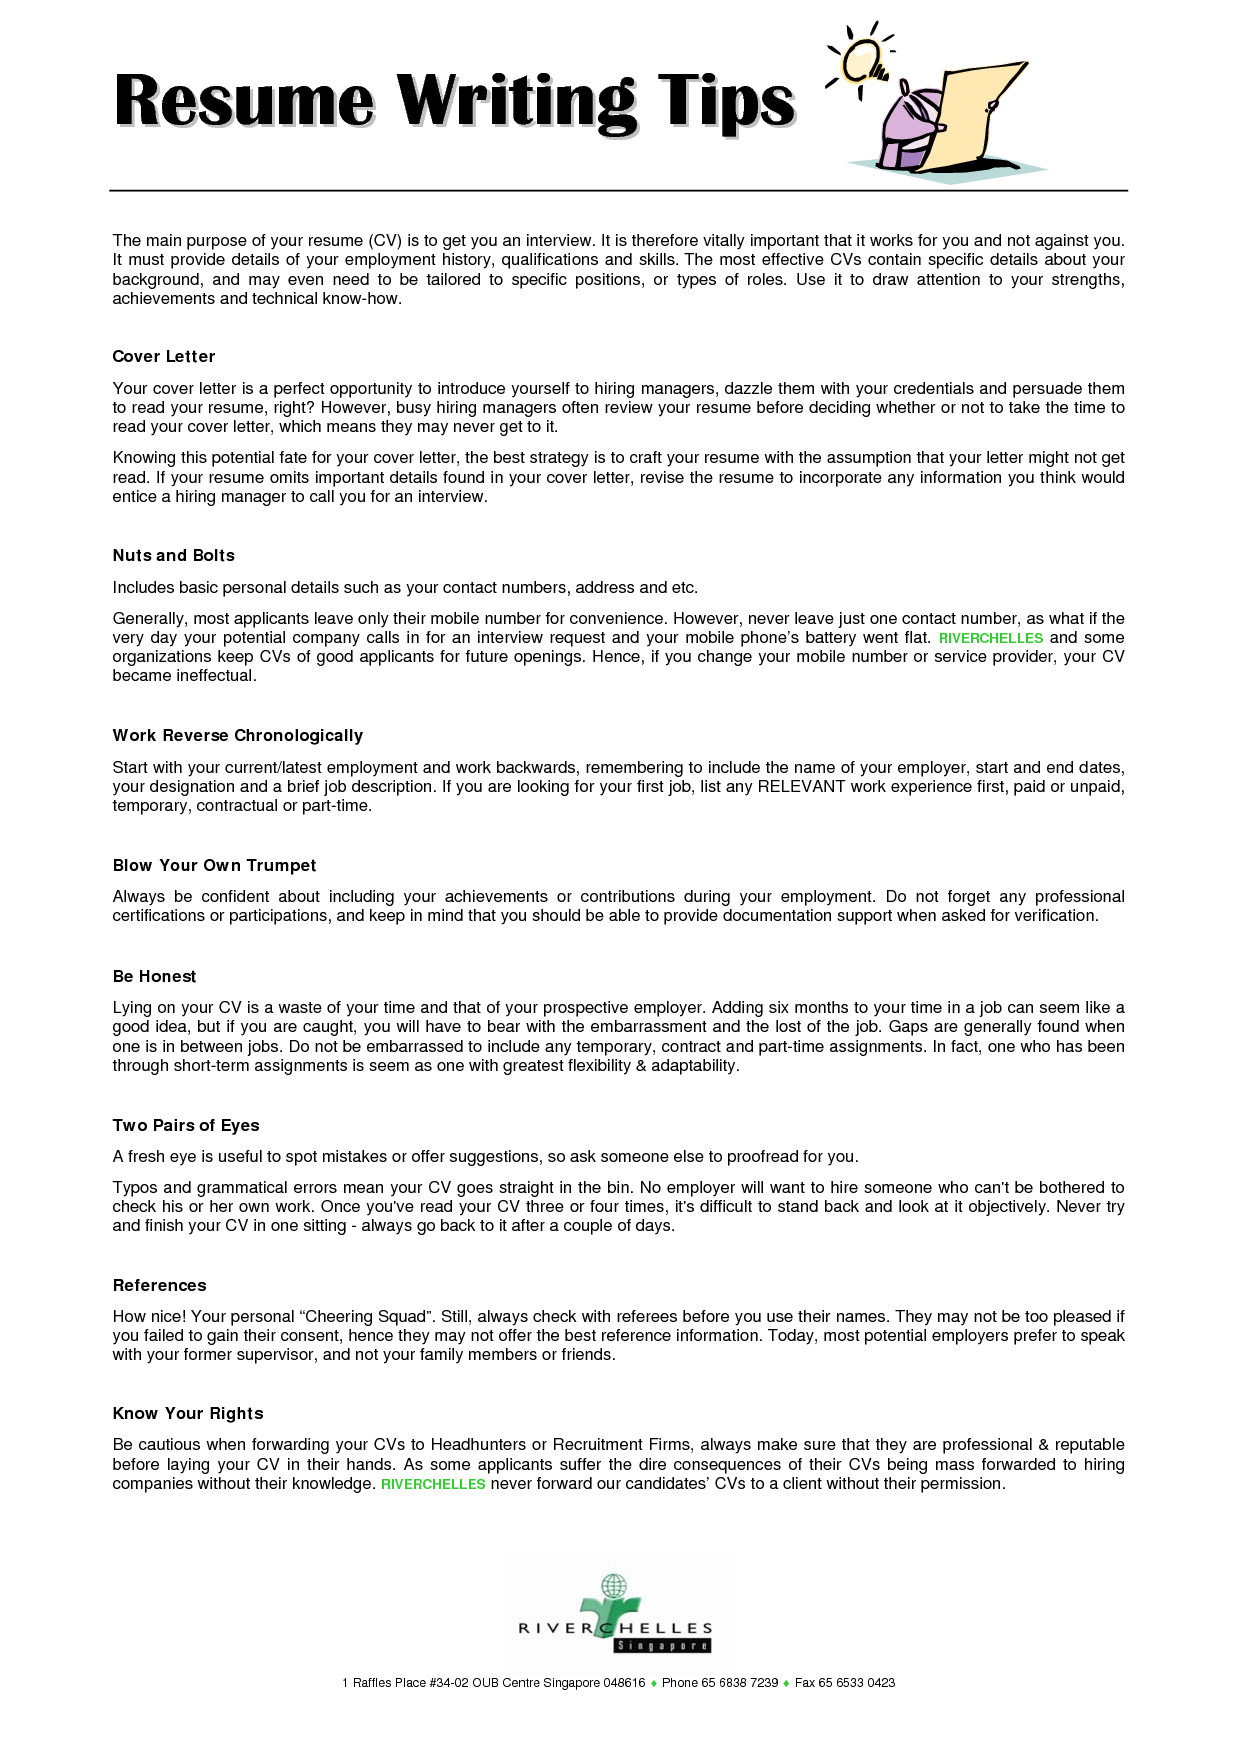 Good Resume Writing Tips And Resume Writing Advice